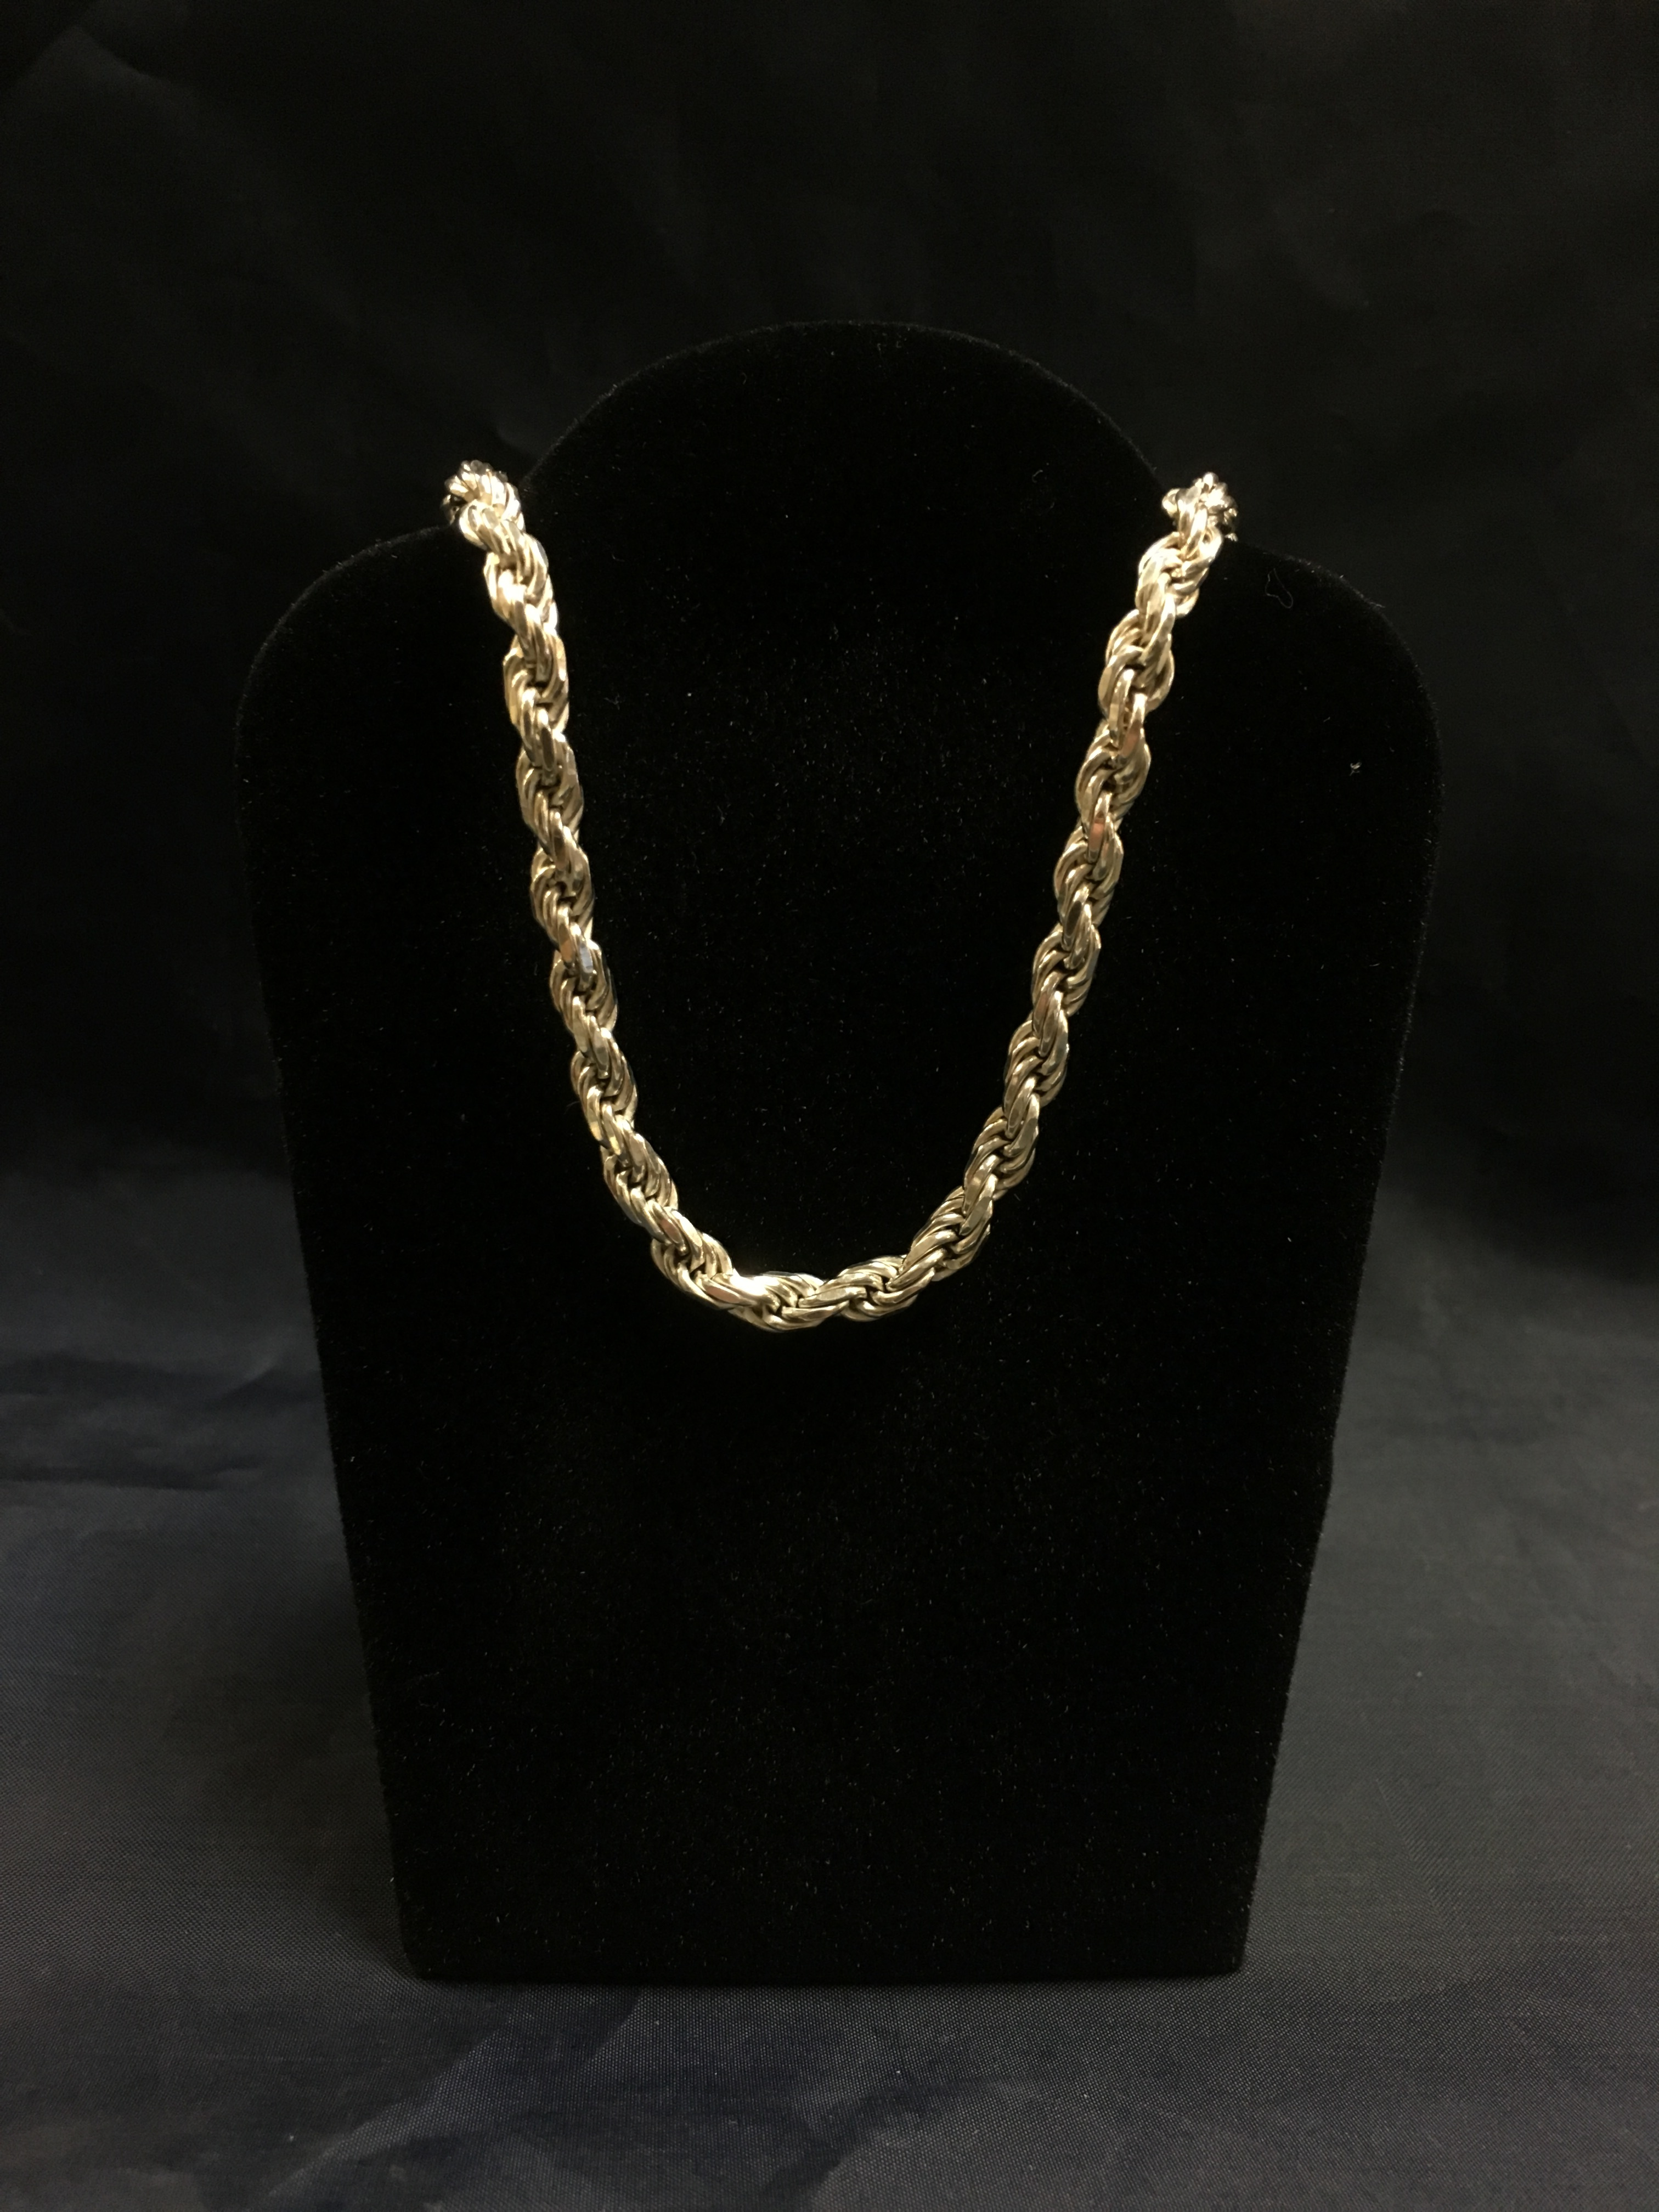 .925 SILVER TWIST ROPE CHAIN. LENGTH: 22